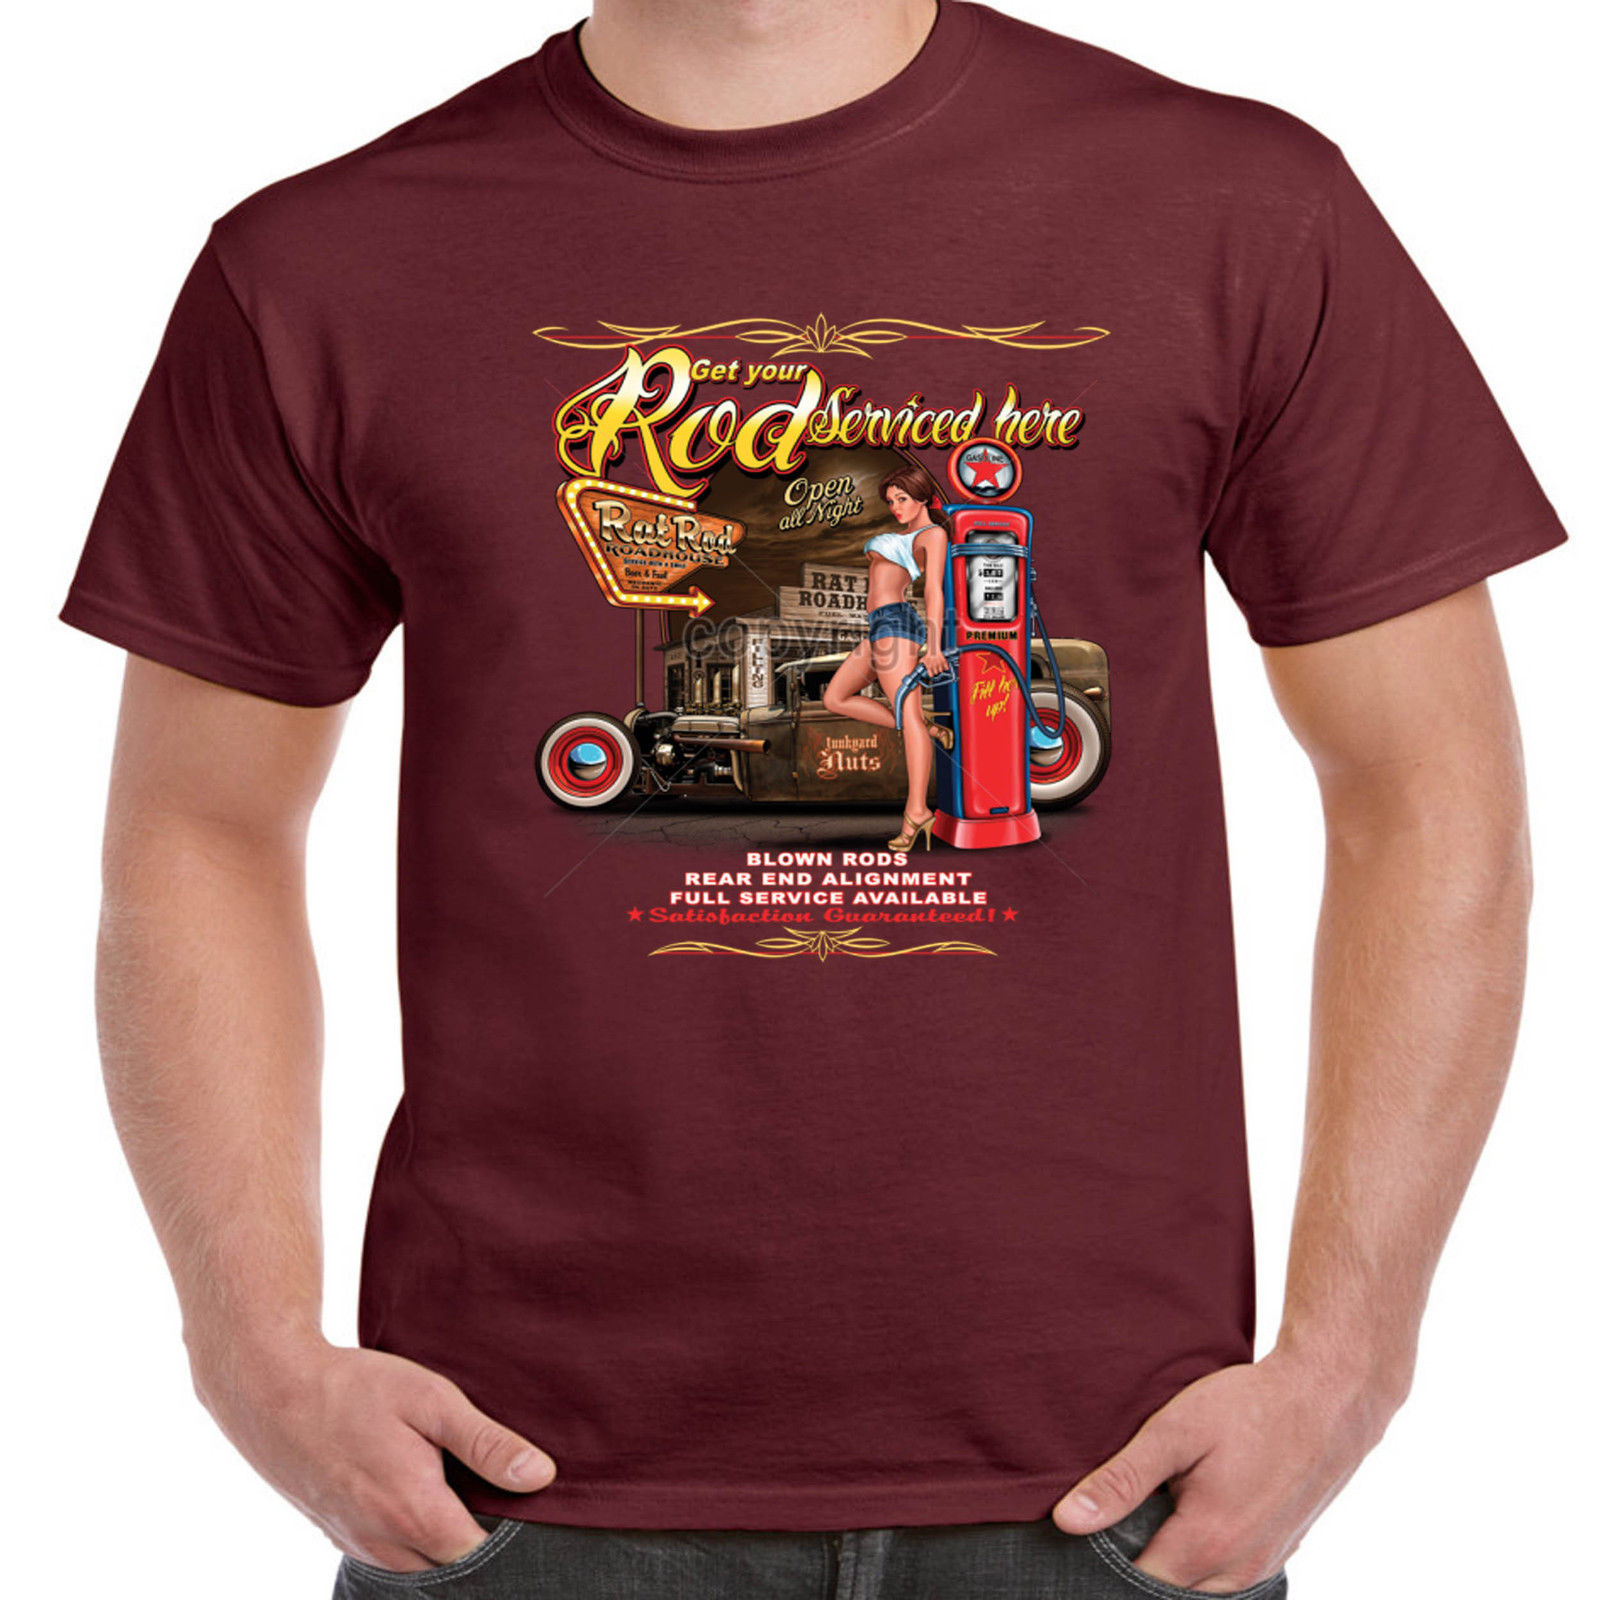 d60e71c9d Hot rod 58 Clothing Men's Rockabilly T Shirt Rod Serviced Here Garage  American V8 Custom Vintage Classic Car 51